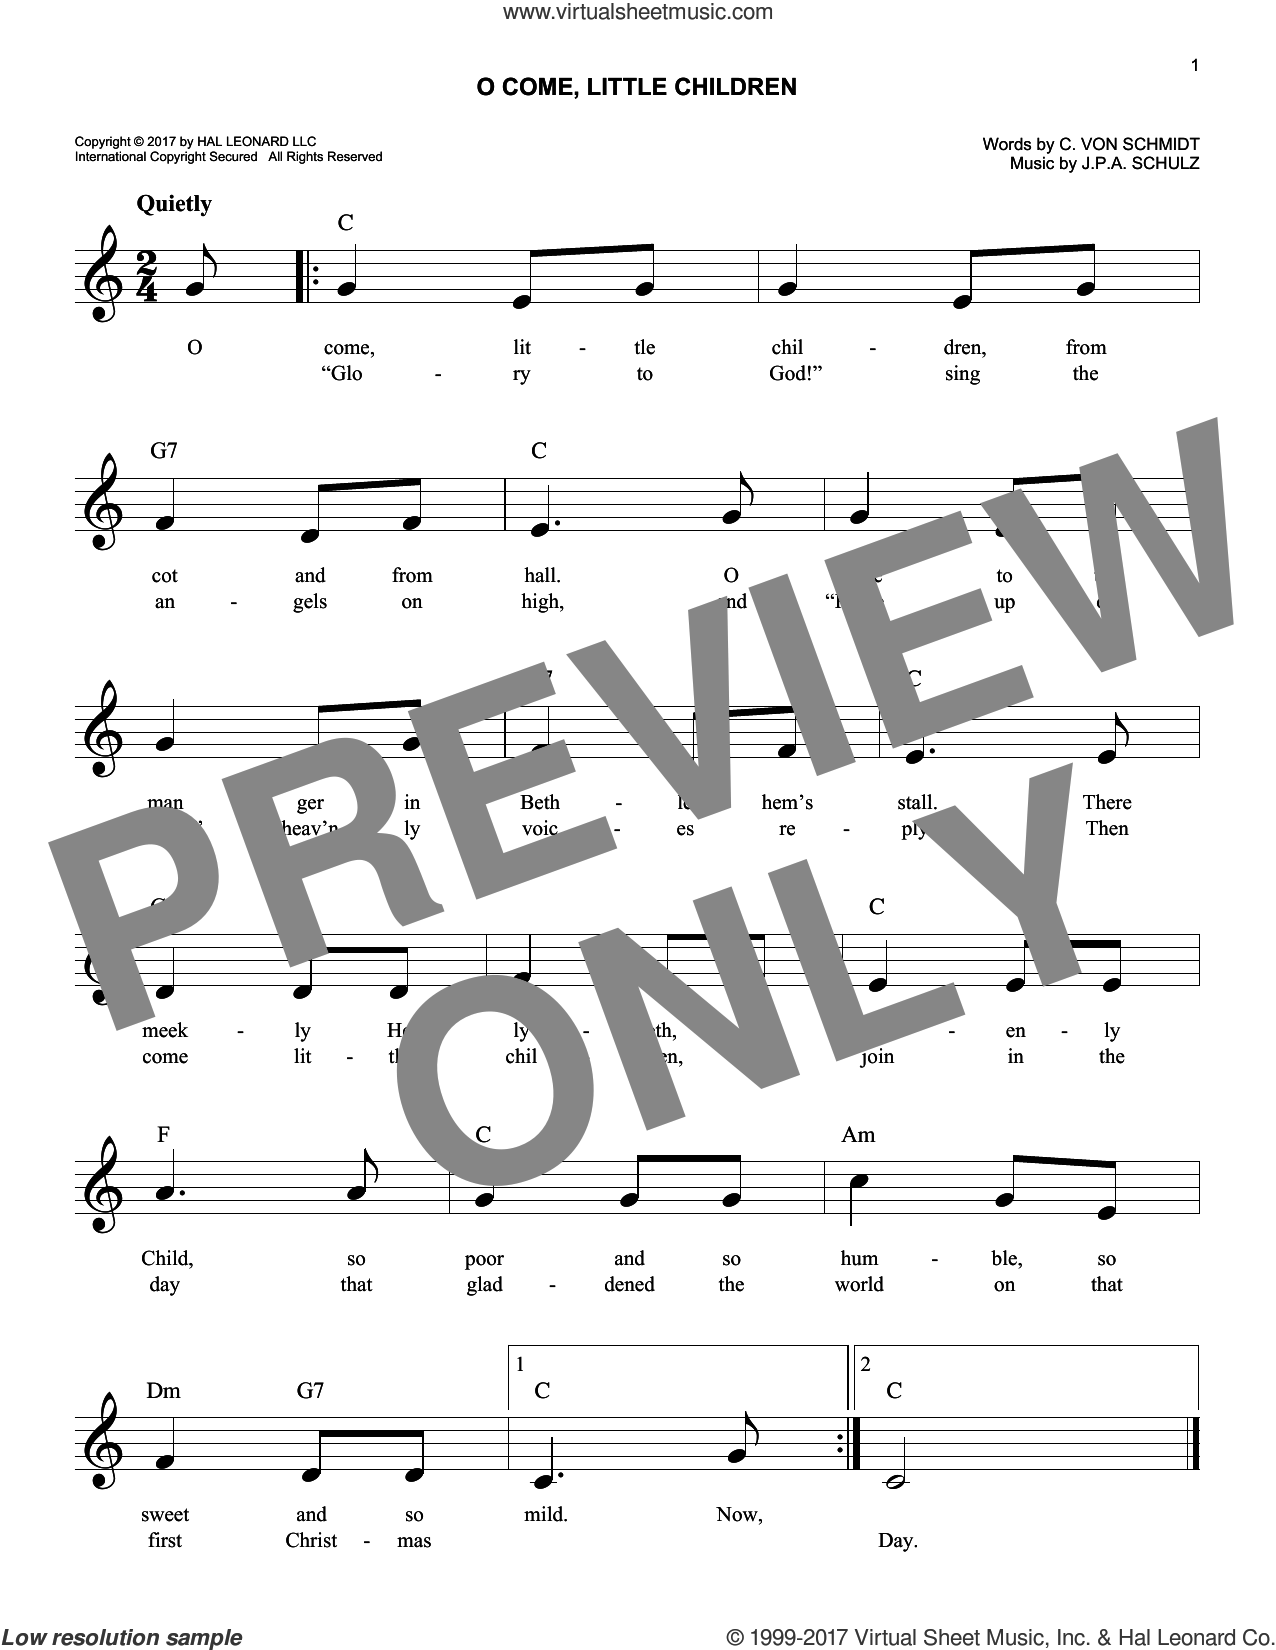 O Come, Little Children sheet music for voice and other instruments (fake book) by J.A.P. Schulz and Cristoph Von Schmid, intermediate skill level